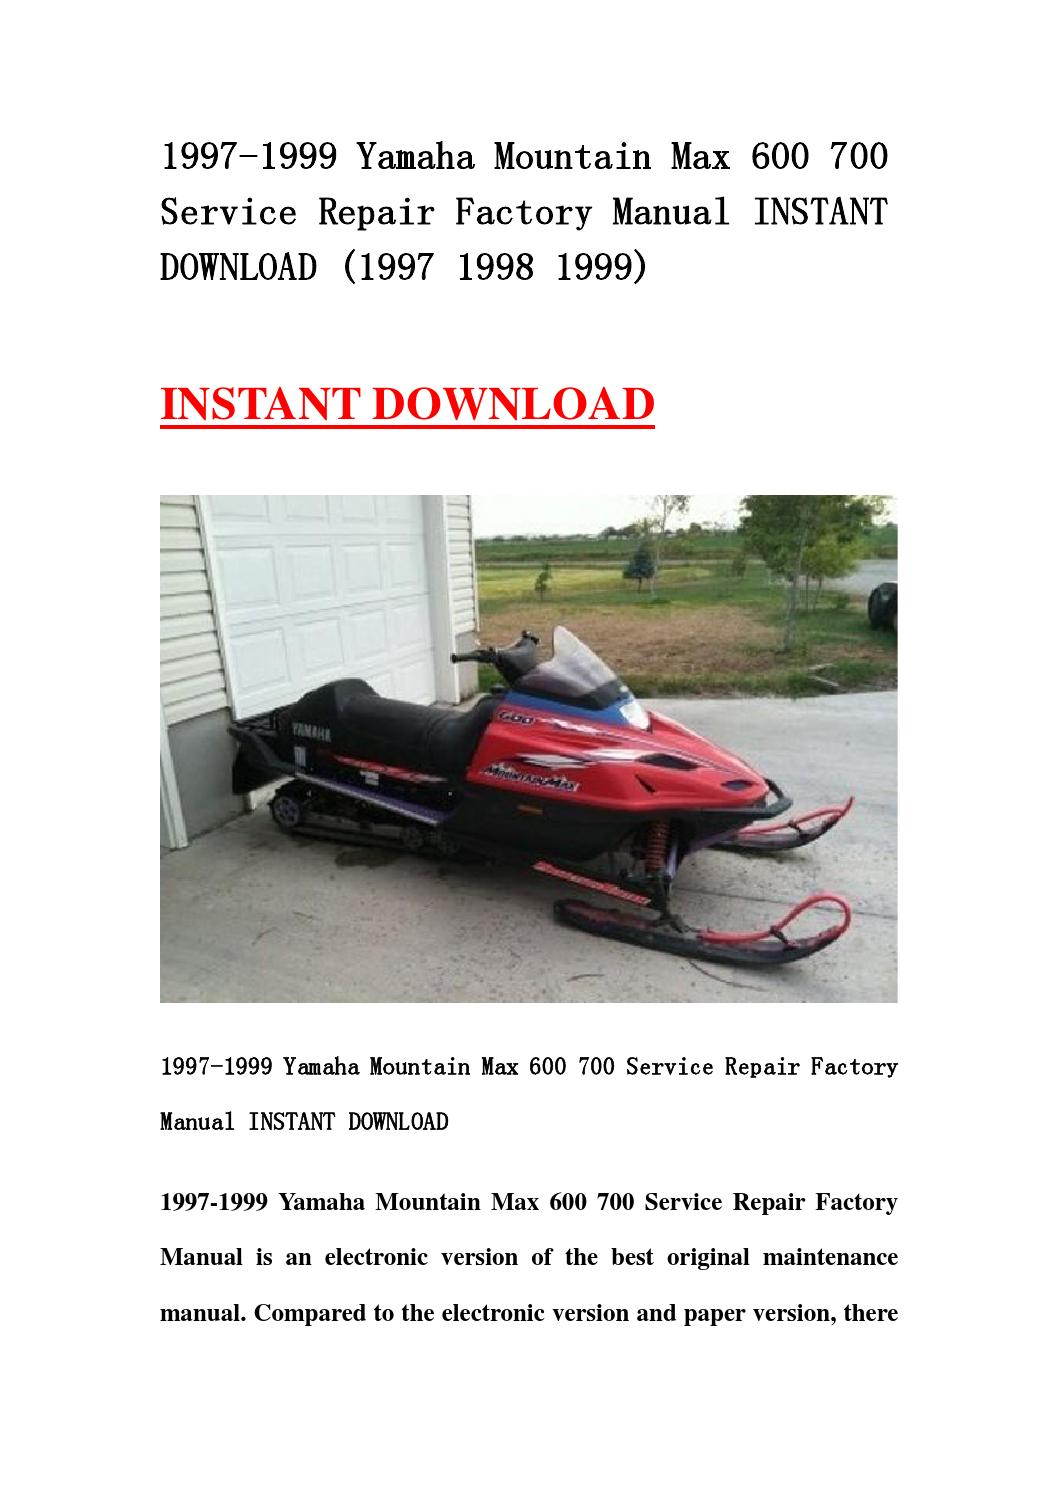 1997 1999 yamaha mountain max 600 700 service repair factory manual instant  download (1997 1998 1999 by hhsgefhsen - issuu